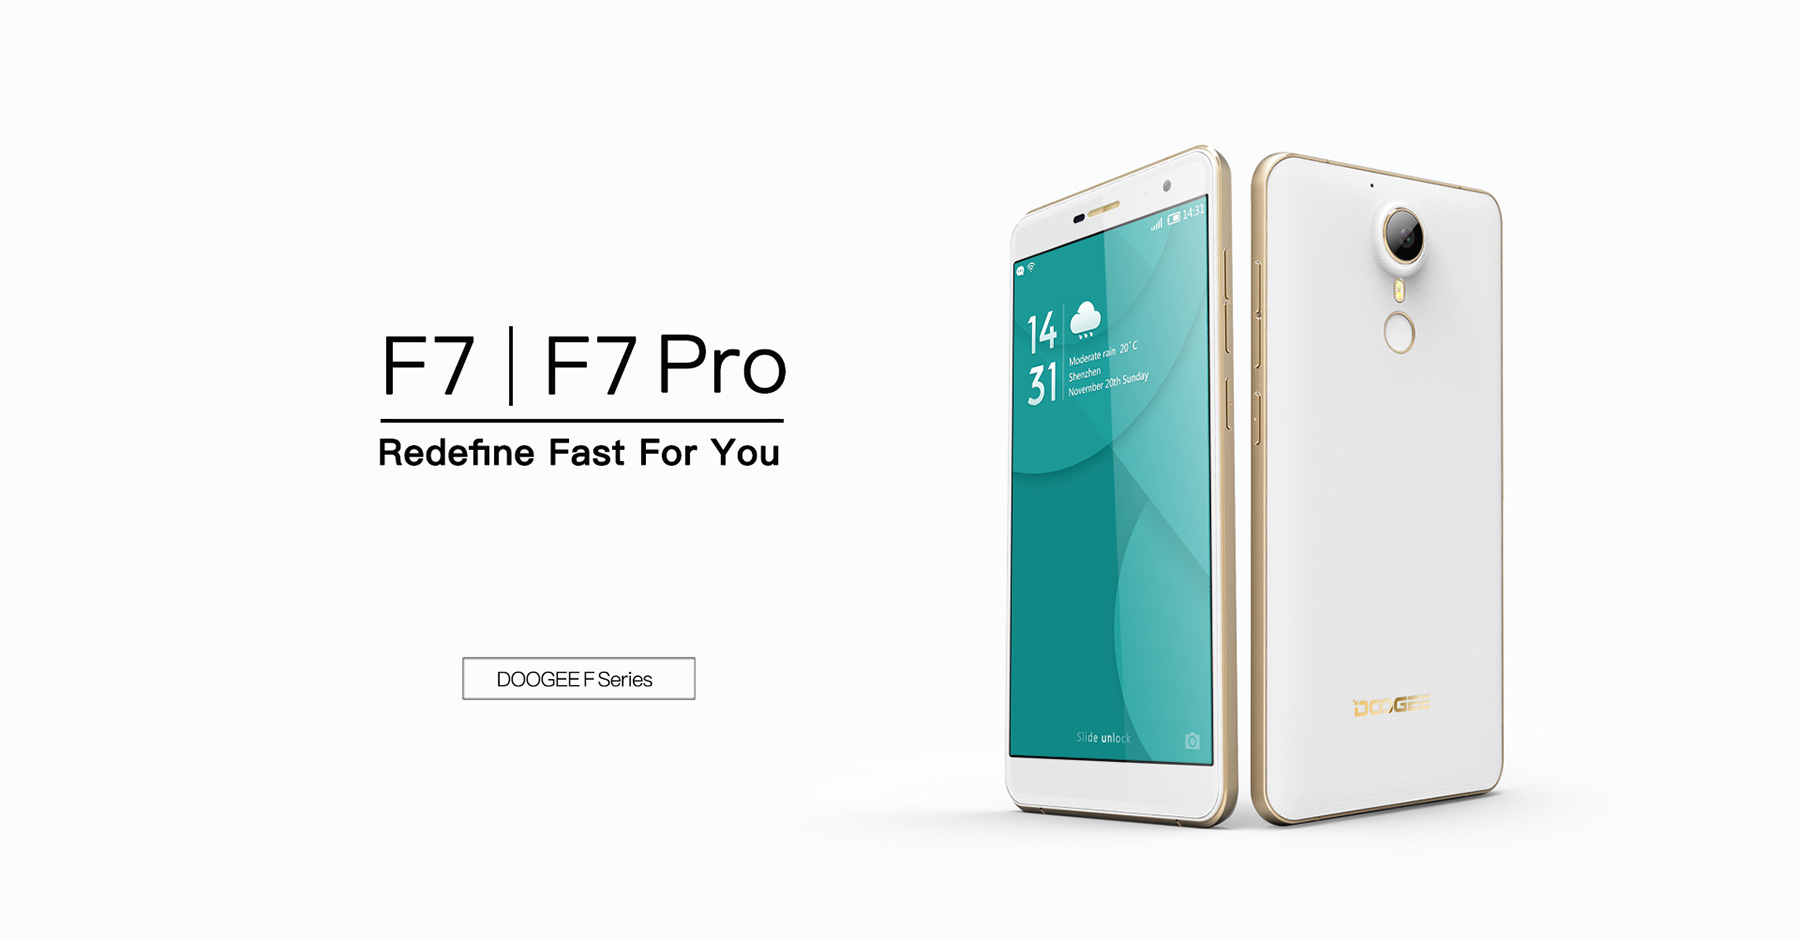 DOOGEE F7 Pro Android 6.0 4G Phablet 5.7 inch Arc Screen MTK6797 Deca Core 4GB RAM 32GB ROM 21MP Main Camera Type-C Fingerprint Sensor HotKnot